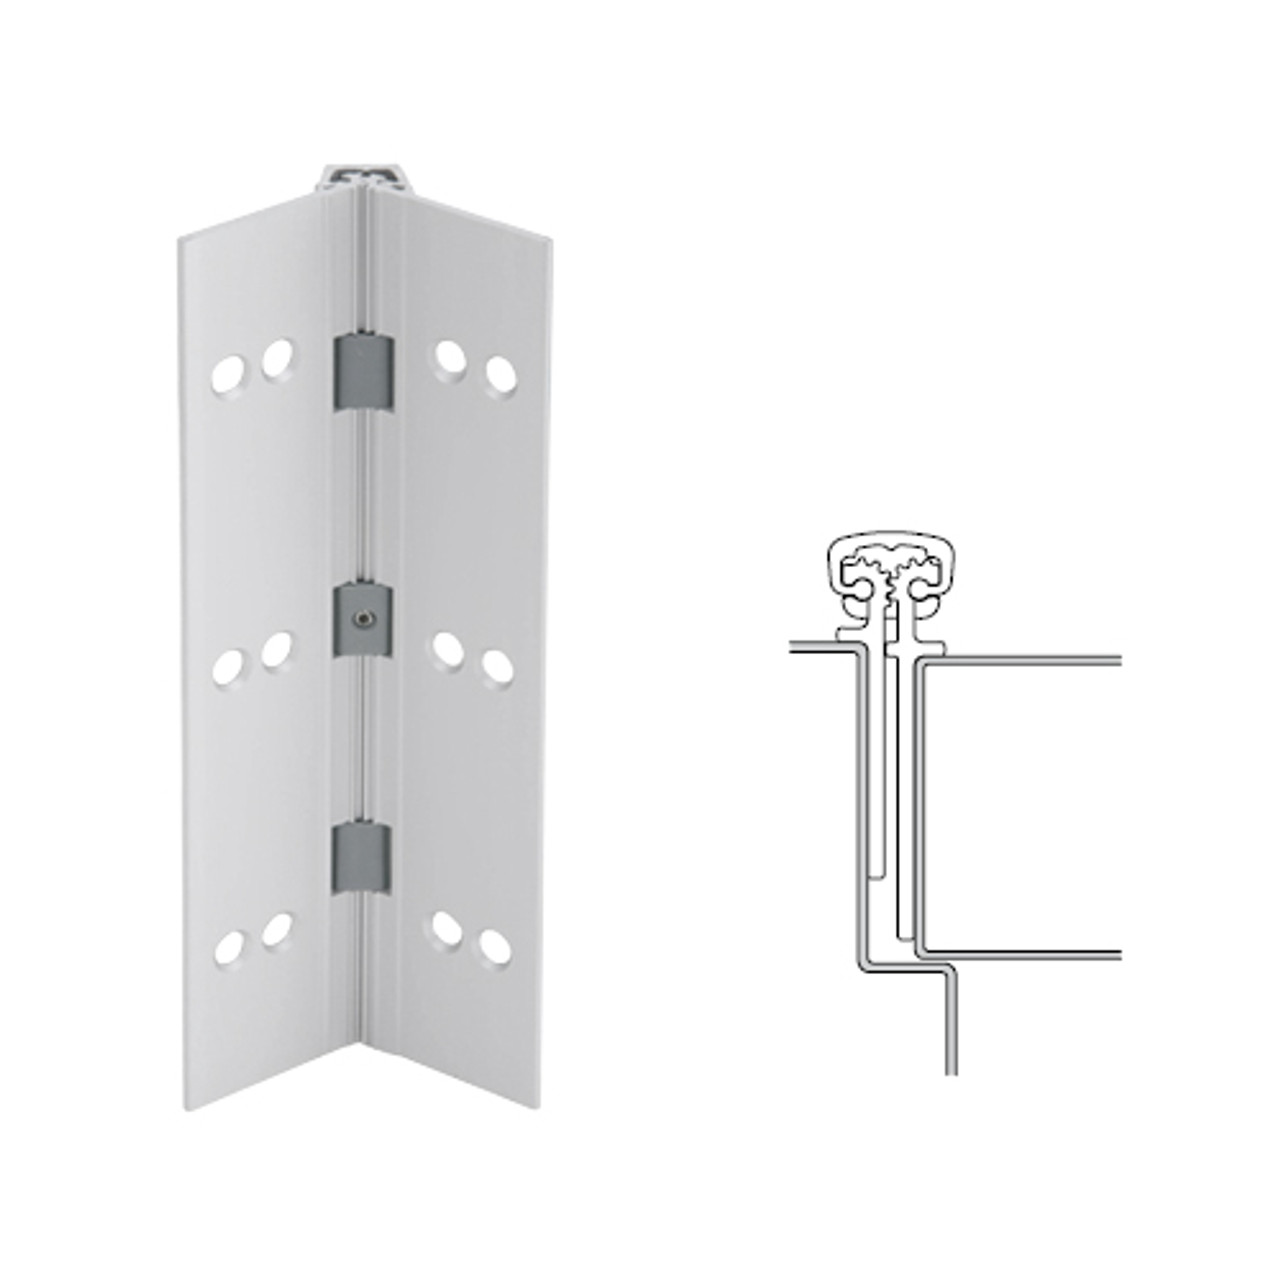 026XY-US28-95-WD IVES Full Mortise Continuous Geared Hinges with Wood Screws in Satin Aluminum